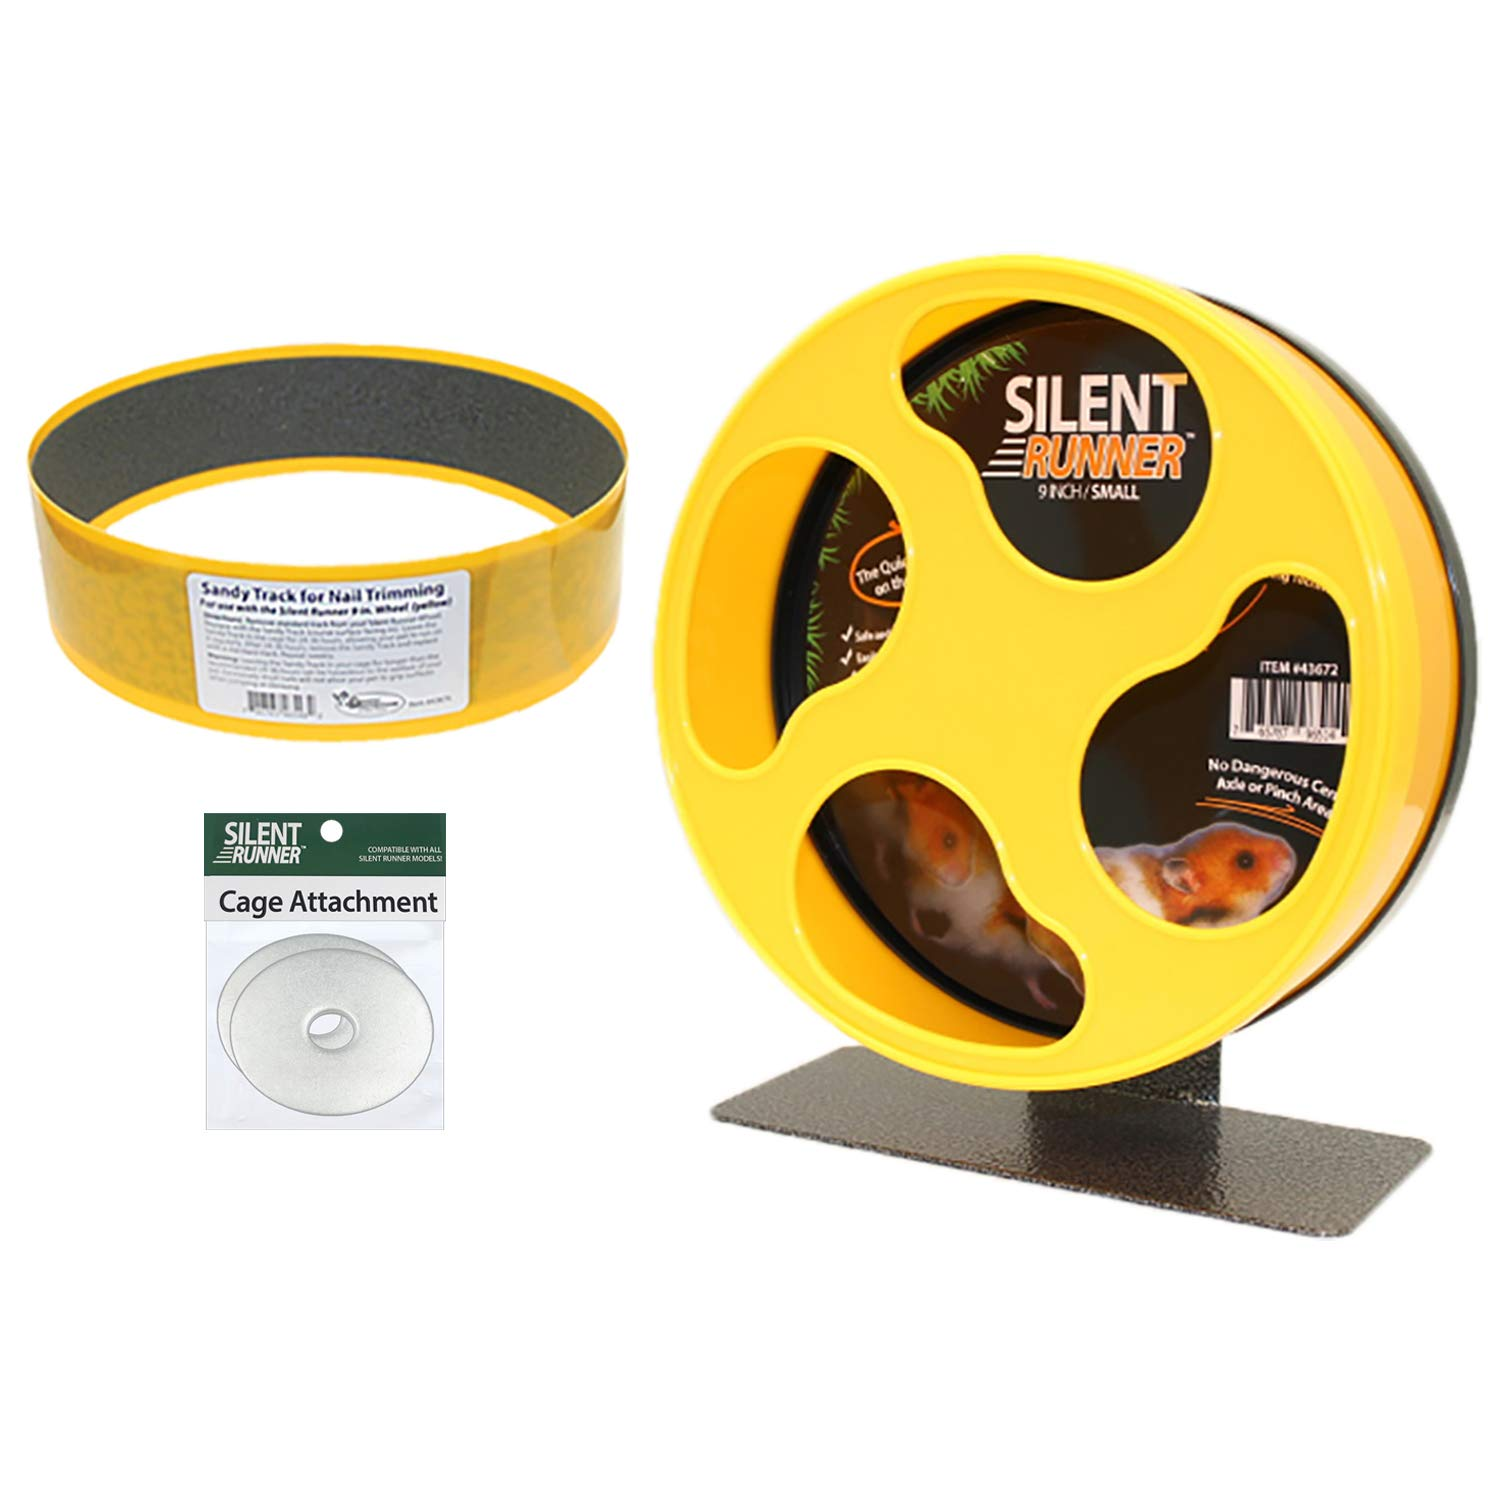 Silent Runner 9'' + Sandy Track + Cage Attachment - Pet Exercise Wheel Package Set - For Robo Hamsters, Syrian Hamsters, Teddy Bear Hamsters, Dwarf Hamsters, Gerbils, Mice And Other Small Pets by Exotic Nutrition